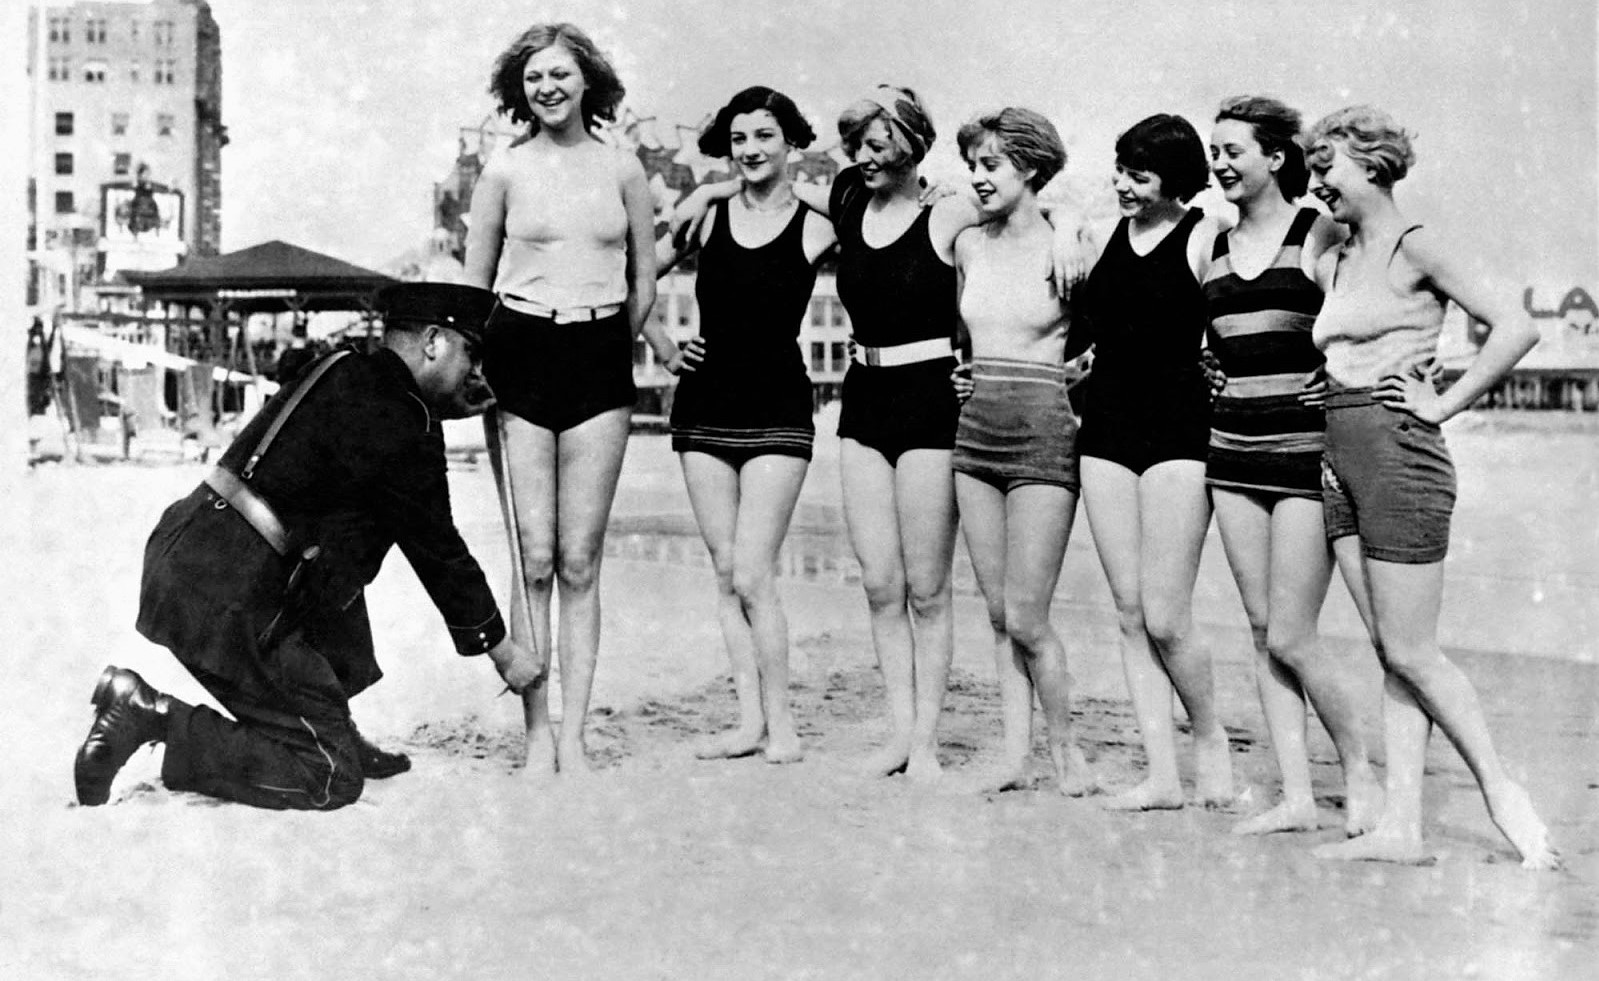 prohibited_bathing_suits_1920s_4_2.jpg